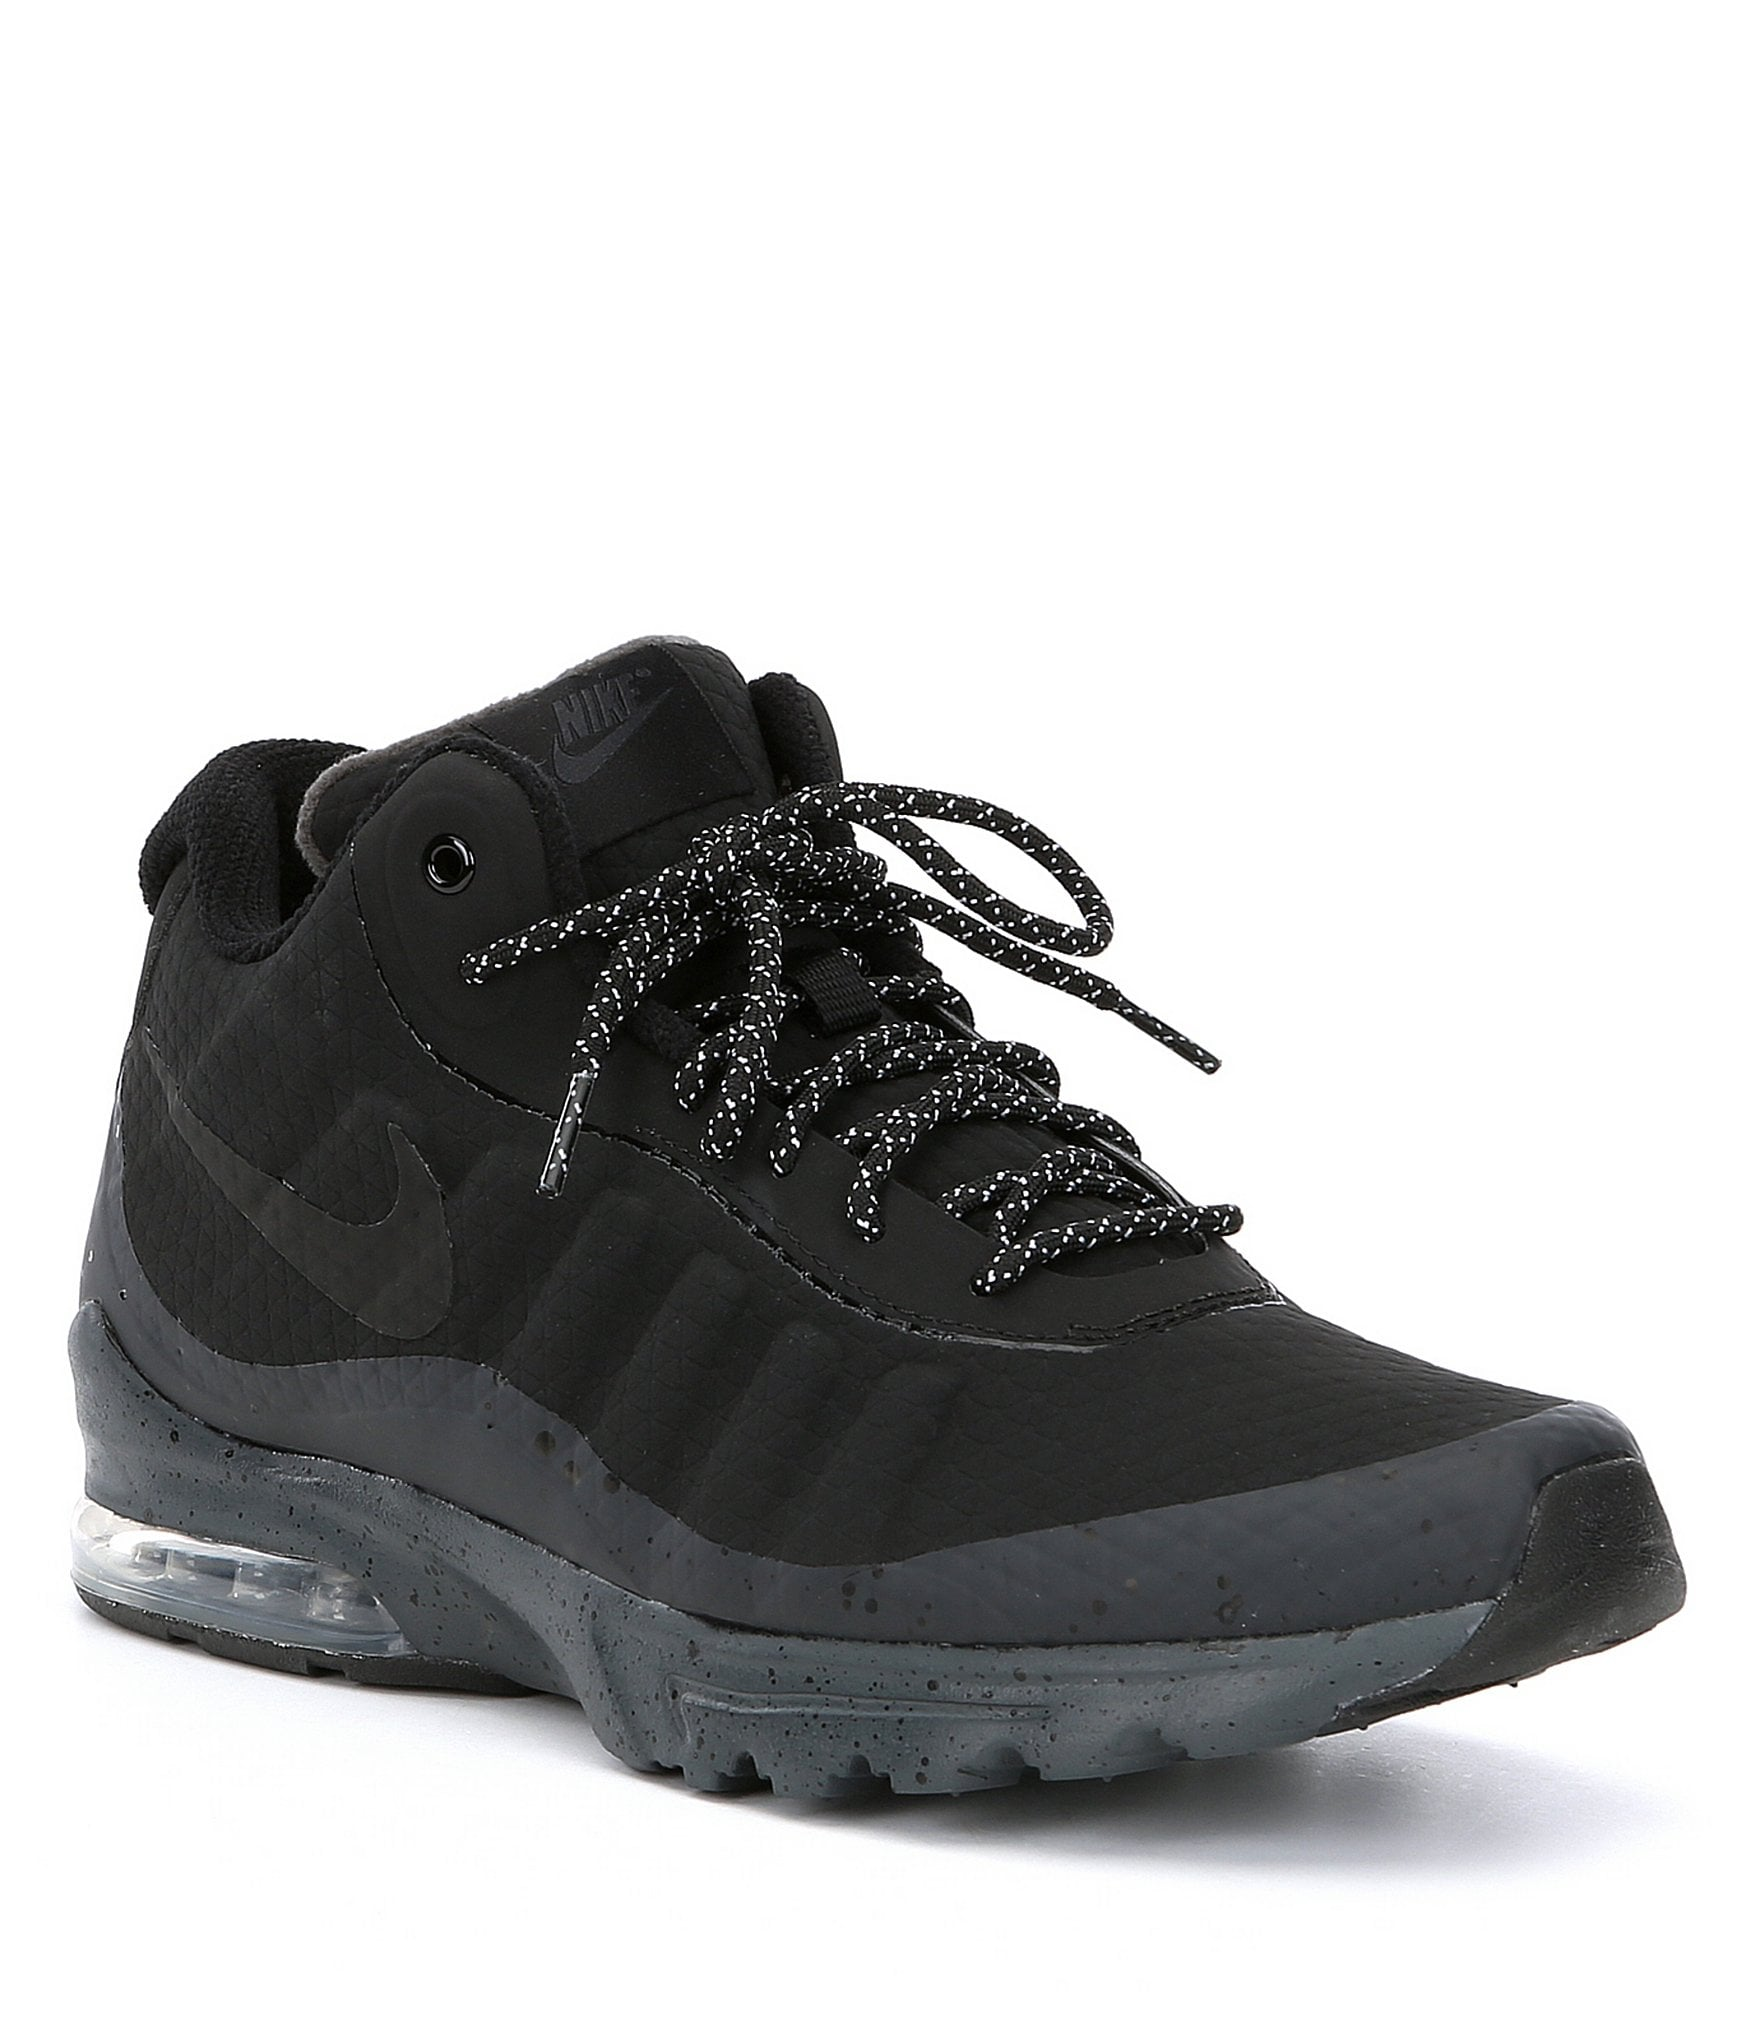 nike men s air max invigor mid lifestyle shoes dillards